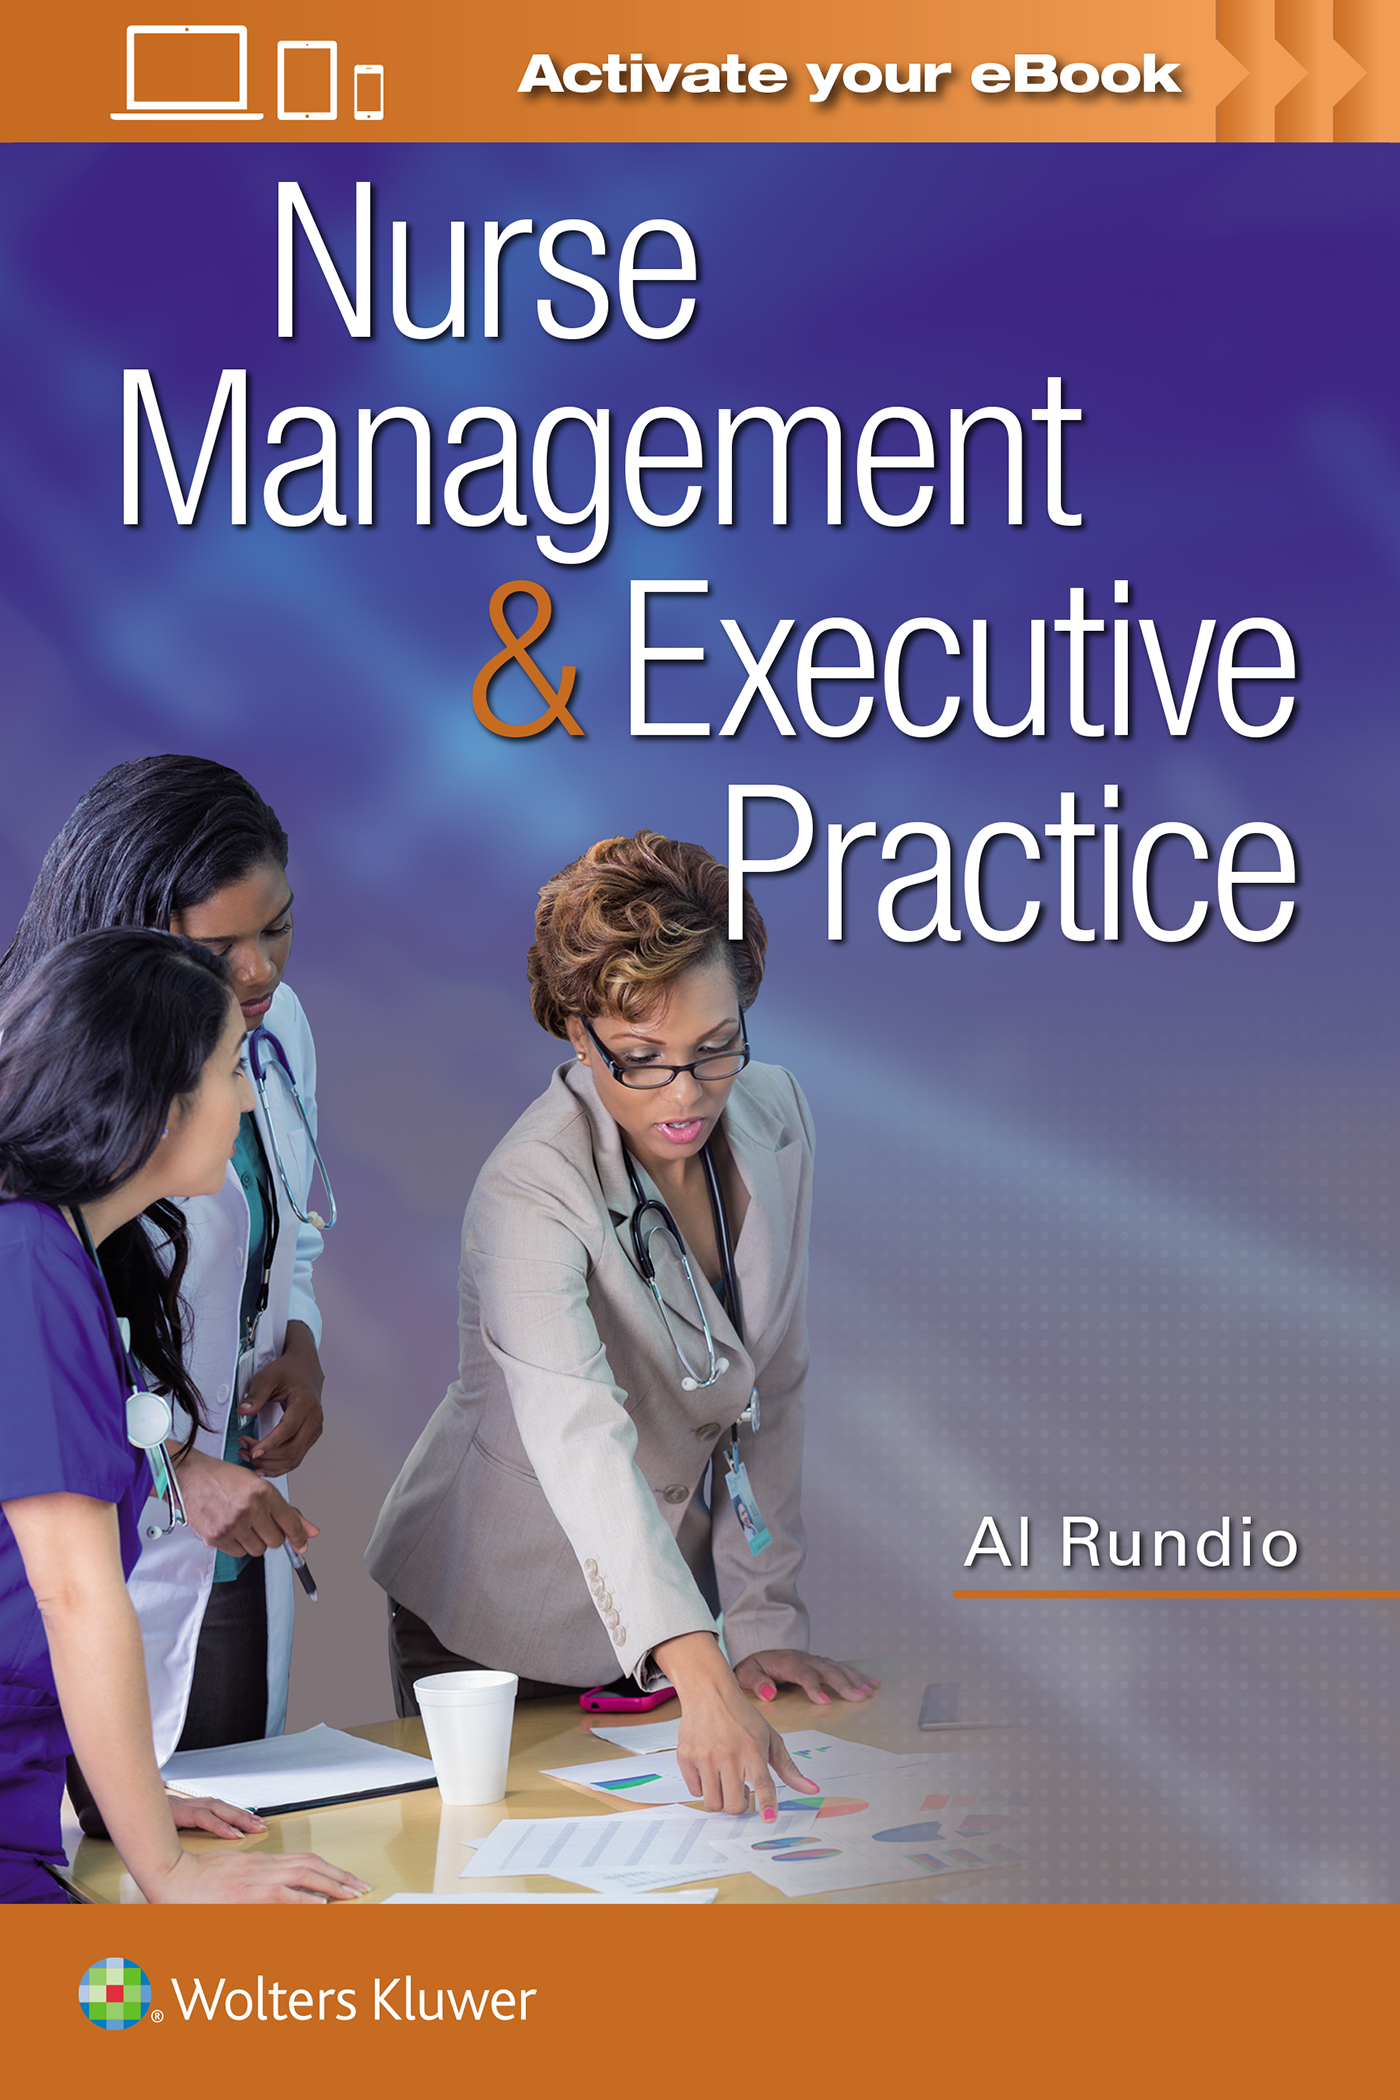 Nurse Management & Executive Practice